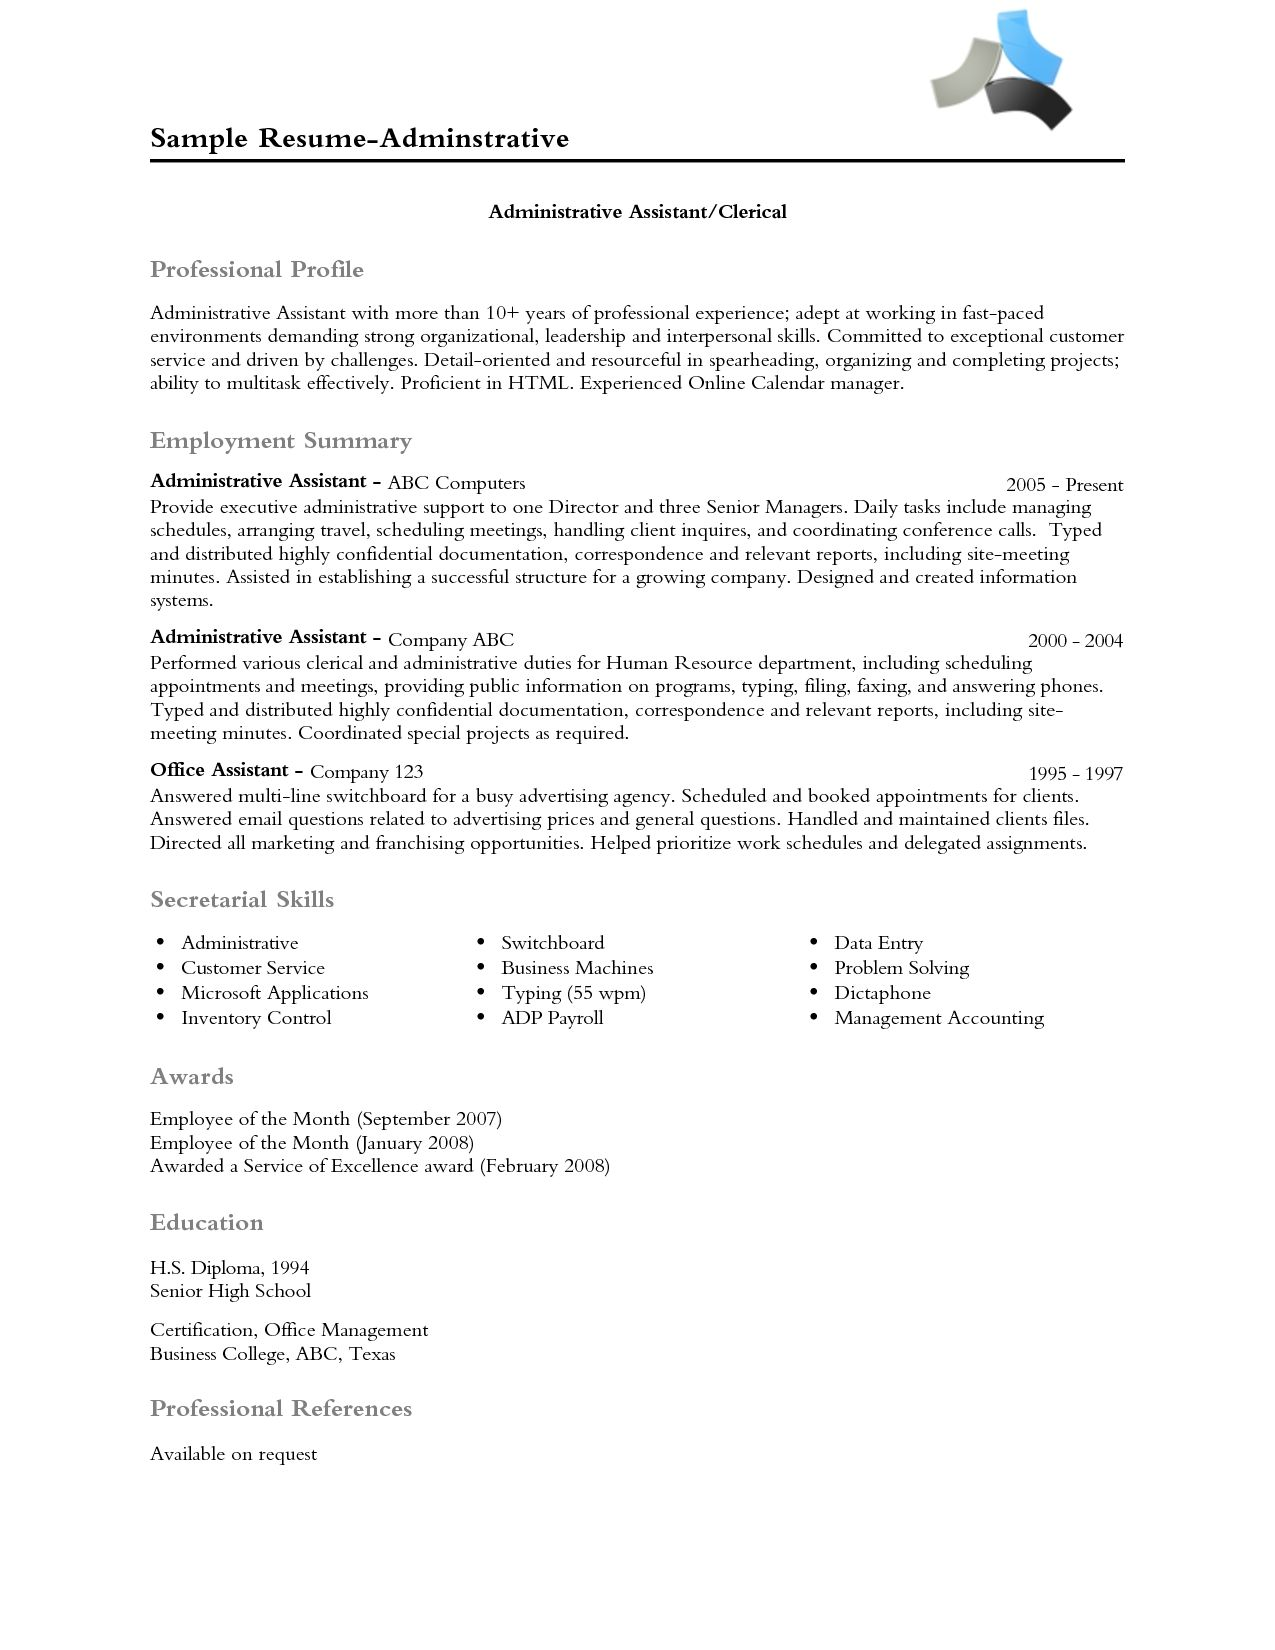 Example Of A Professional Resume Resume Professional Profile Examples Professional Profile Examples